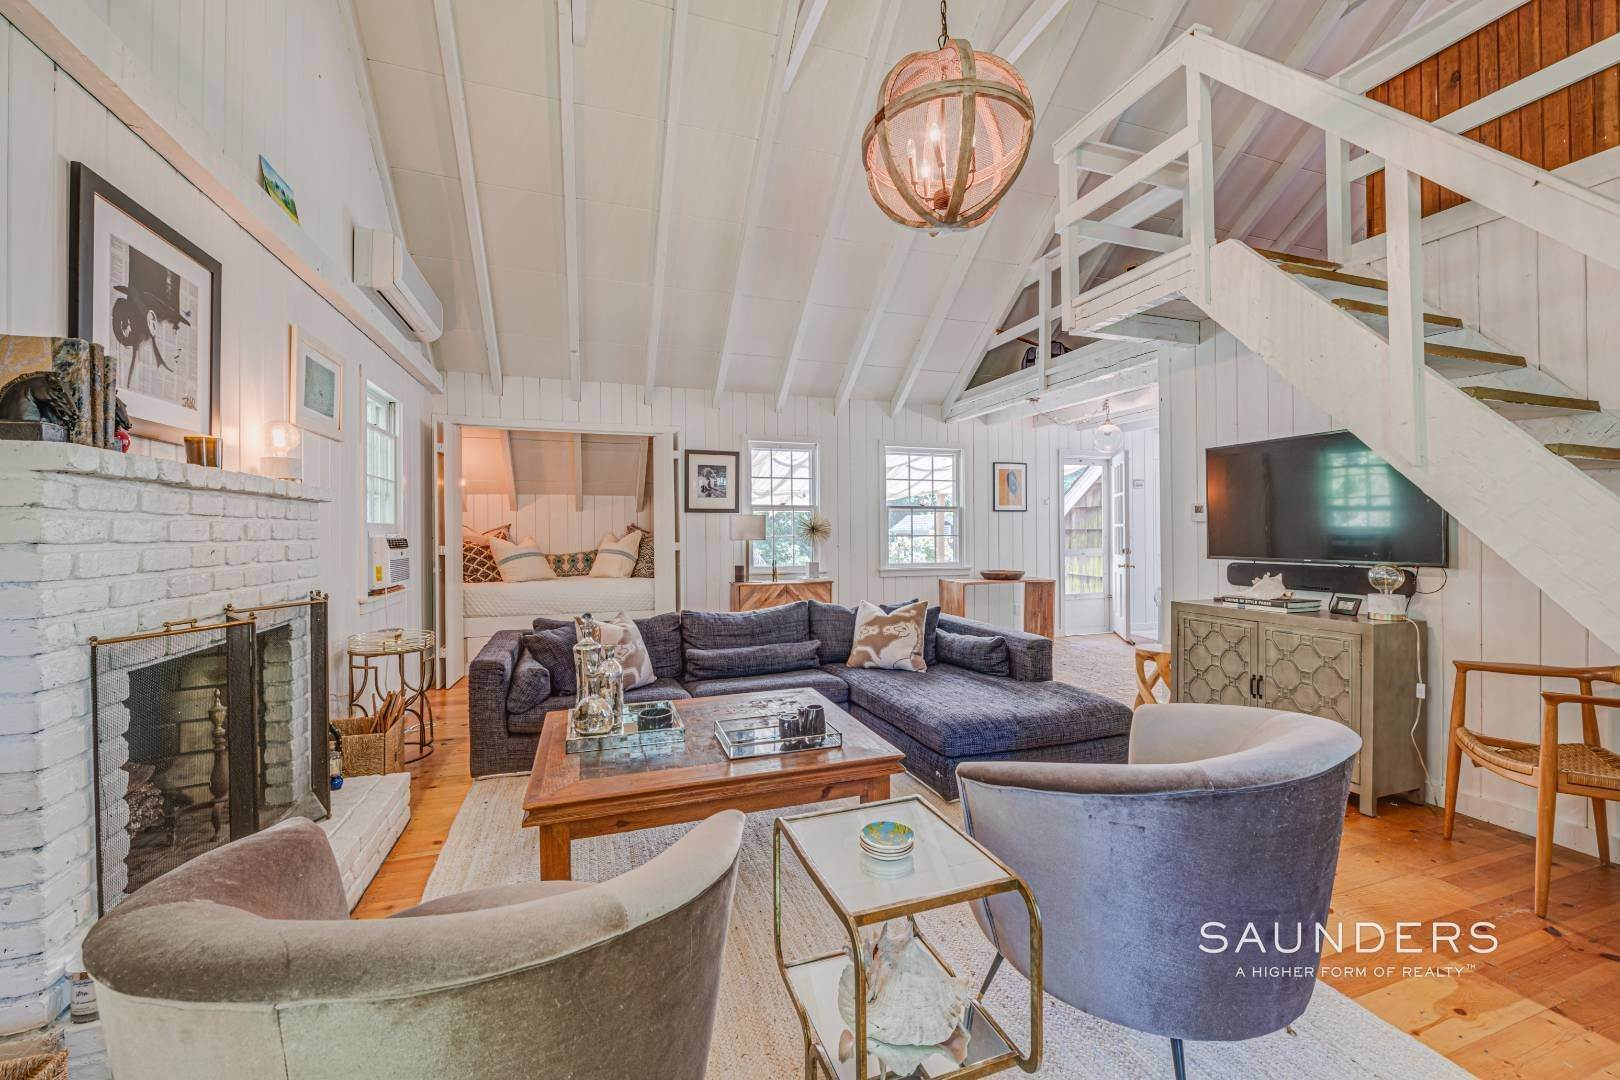 4. Single Family Homes for Sale at Bucolic South Of The Highway In Wainscott 6 Windsor Lane, Wainscott, East Hampton Town, NY 11975